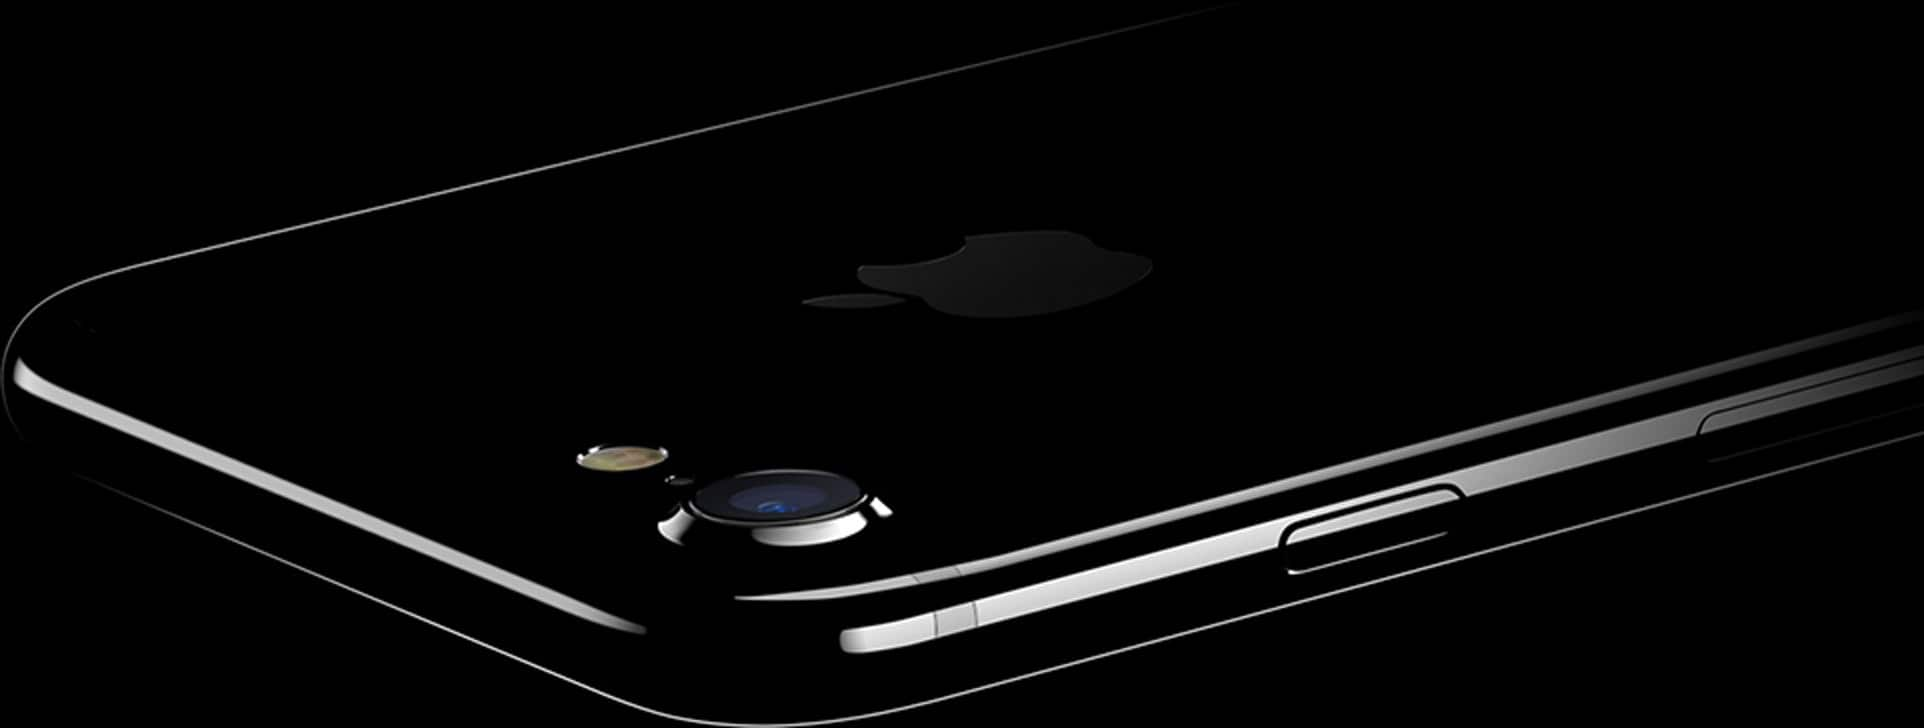 Iphone 7 Apple Price Specs Att Phone Jack Wiring Diagram Lens To Make It Even Better For Shooting Photos And Videos In Low Light With Advanced Features Like Wide Color Capture Your Live